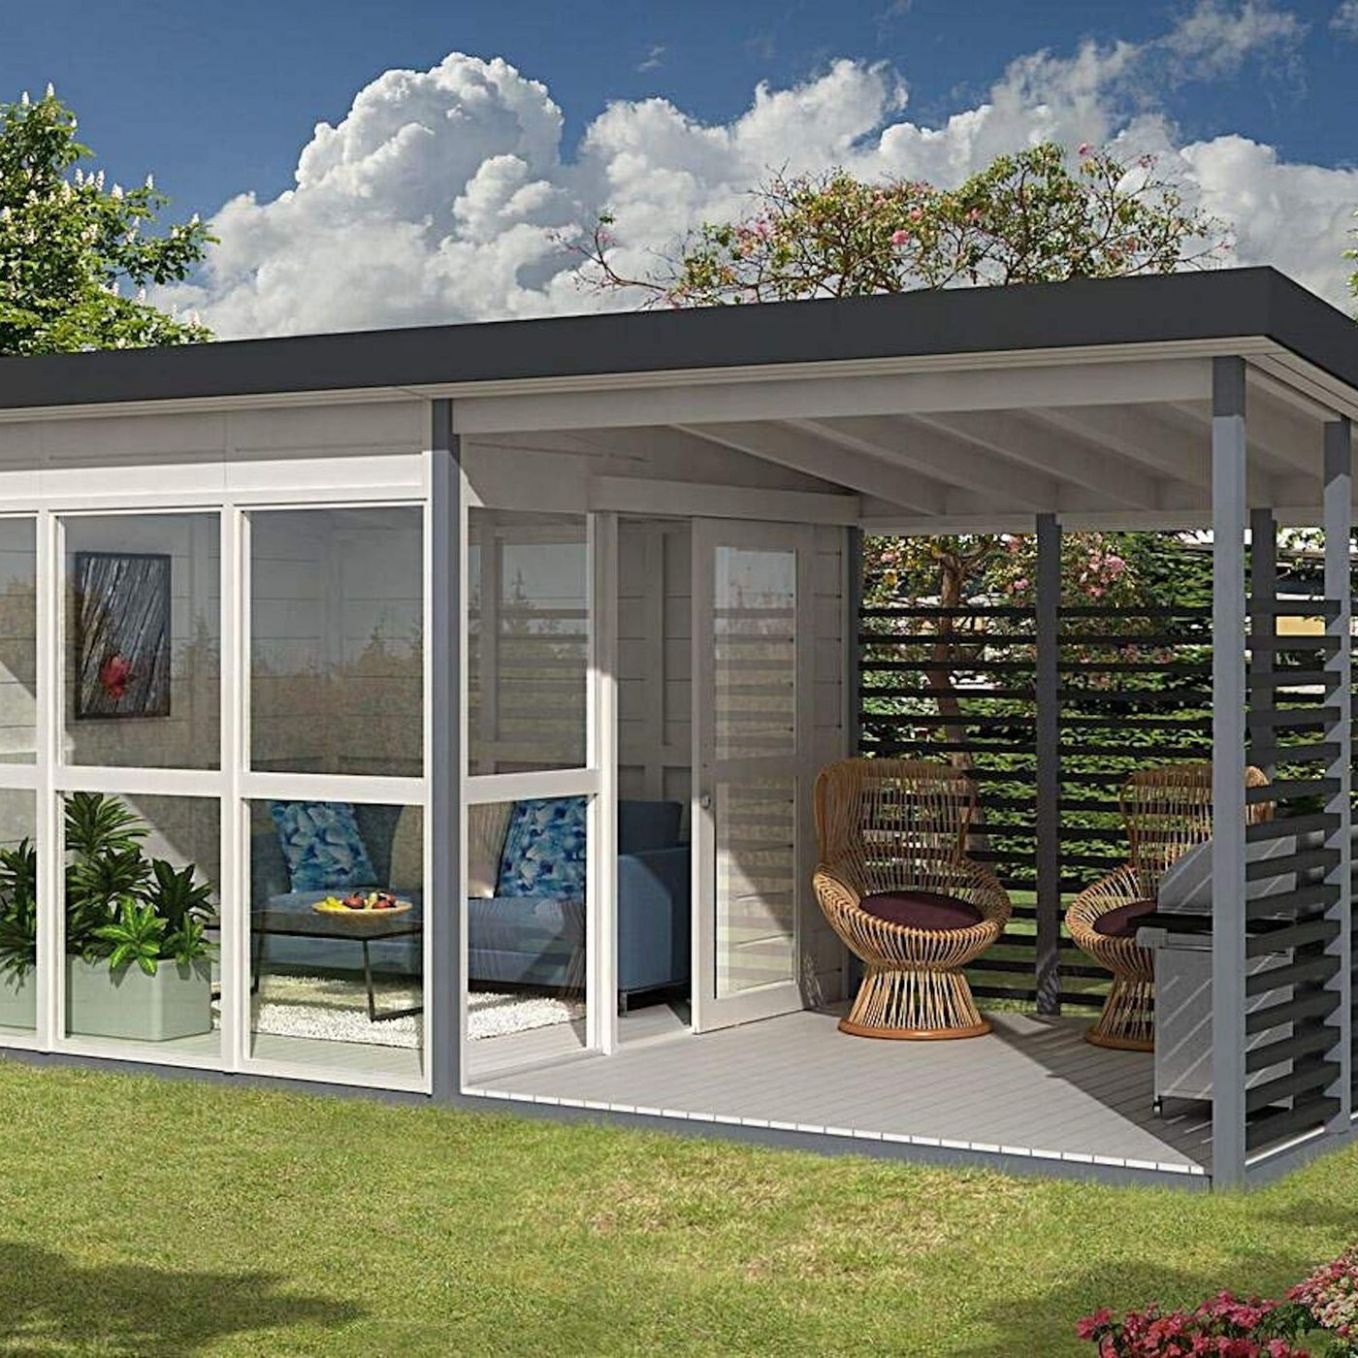 Amazon's viral $11K tiny house is back in stock - Curbed